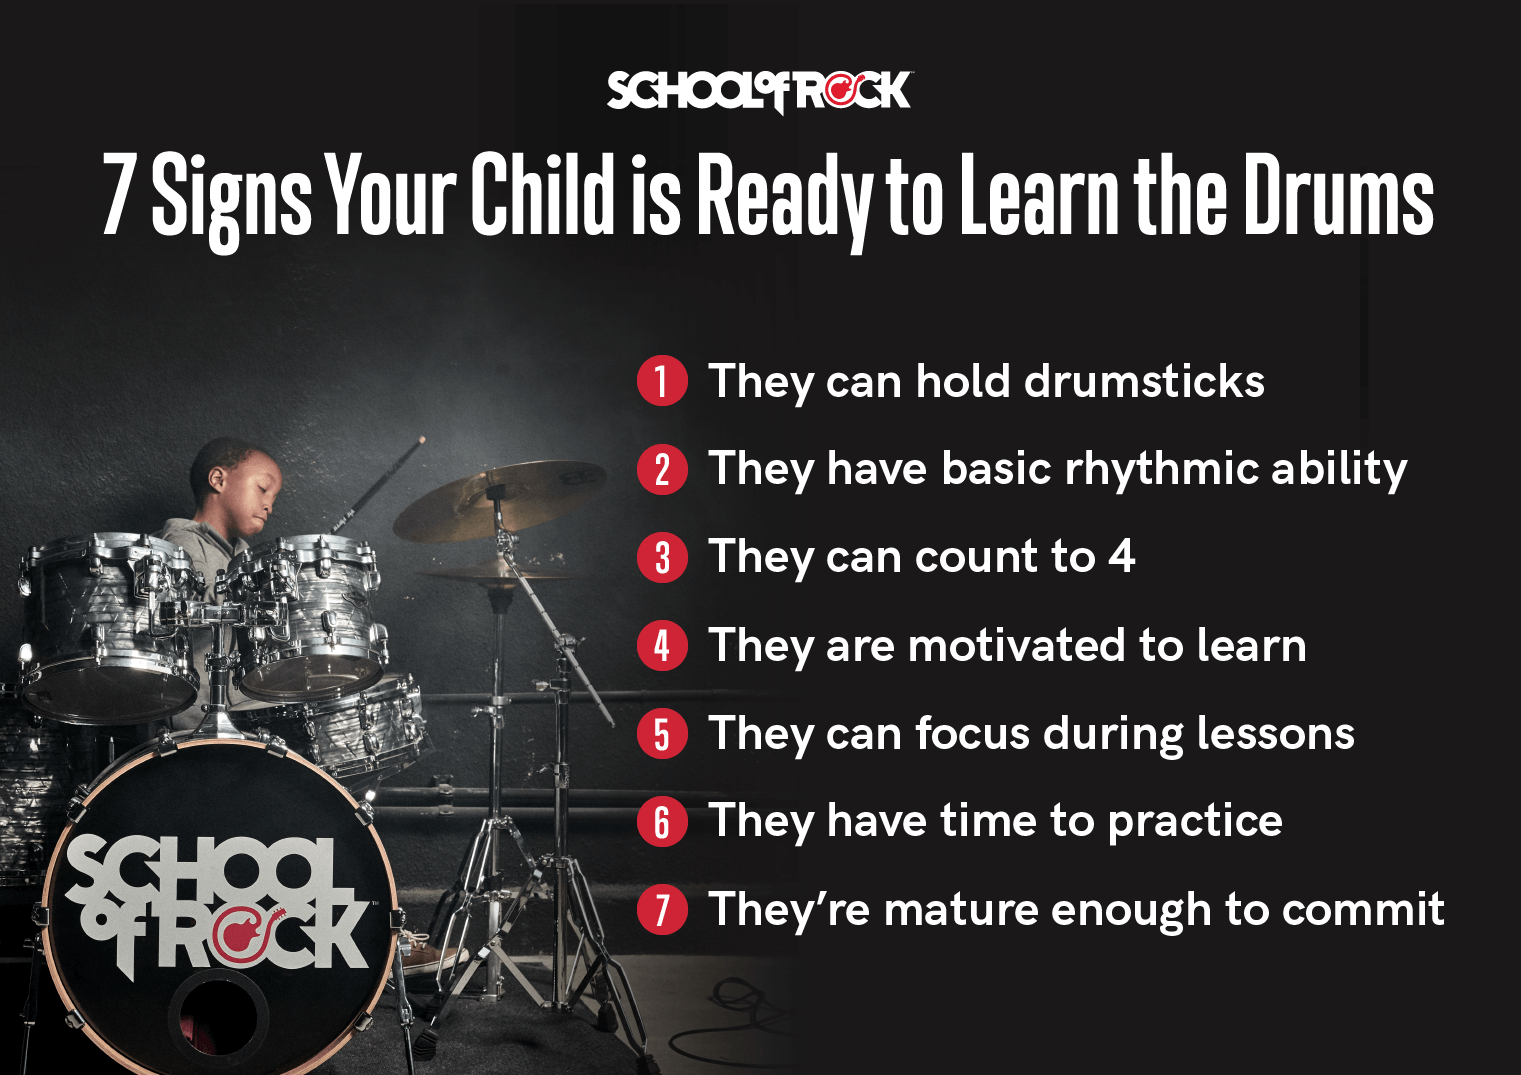 7 signs your child is ready to learn the drums.